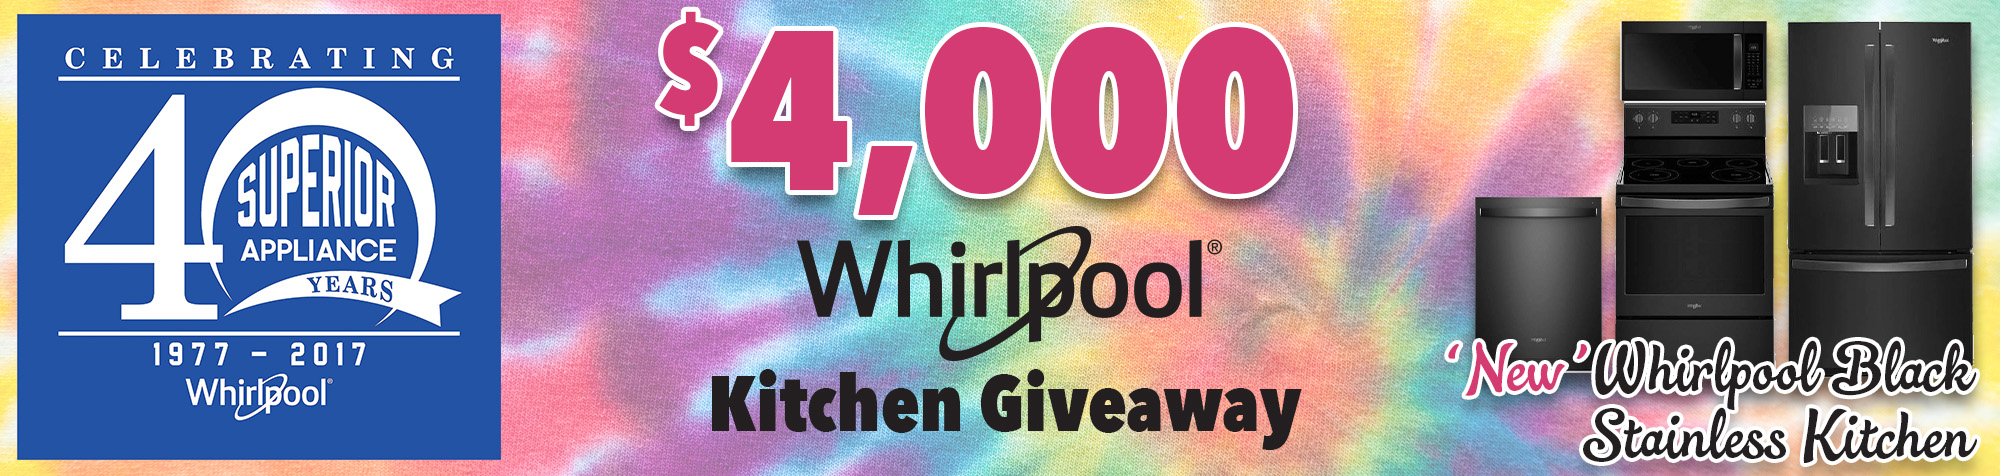 'New' Whirlpool Black Stainless Kitchen